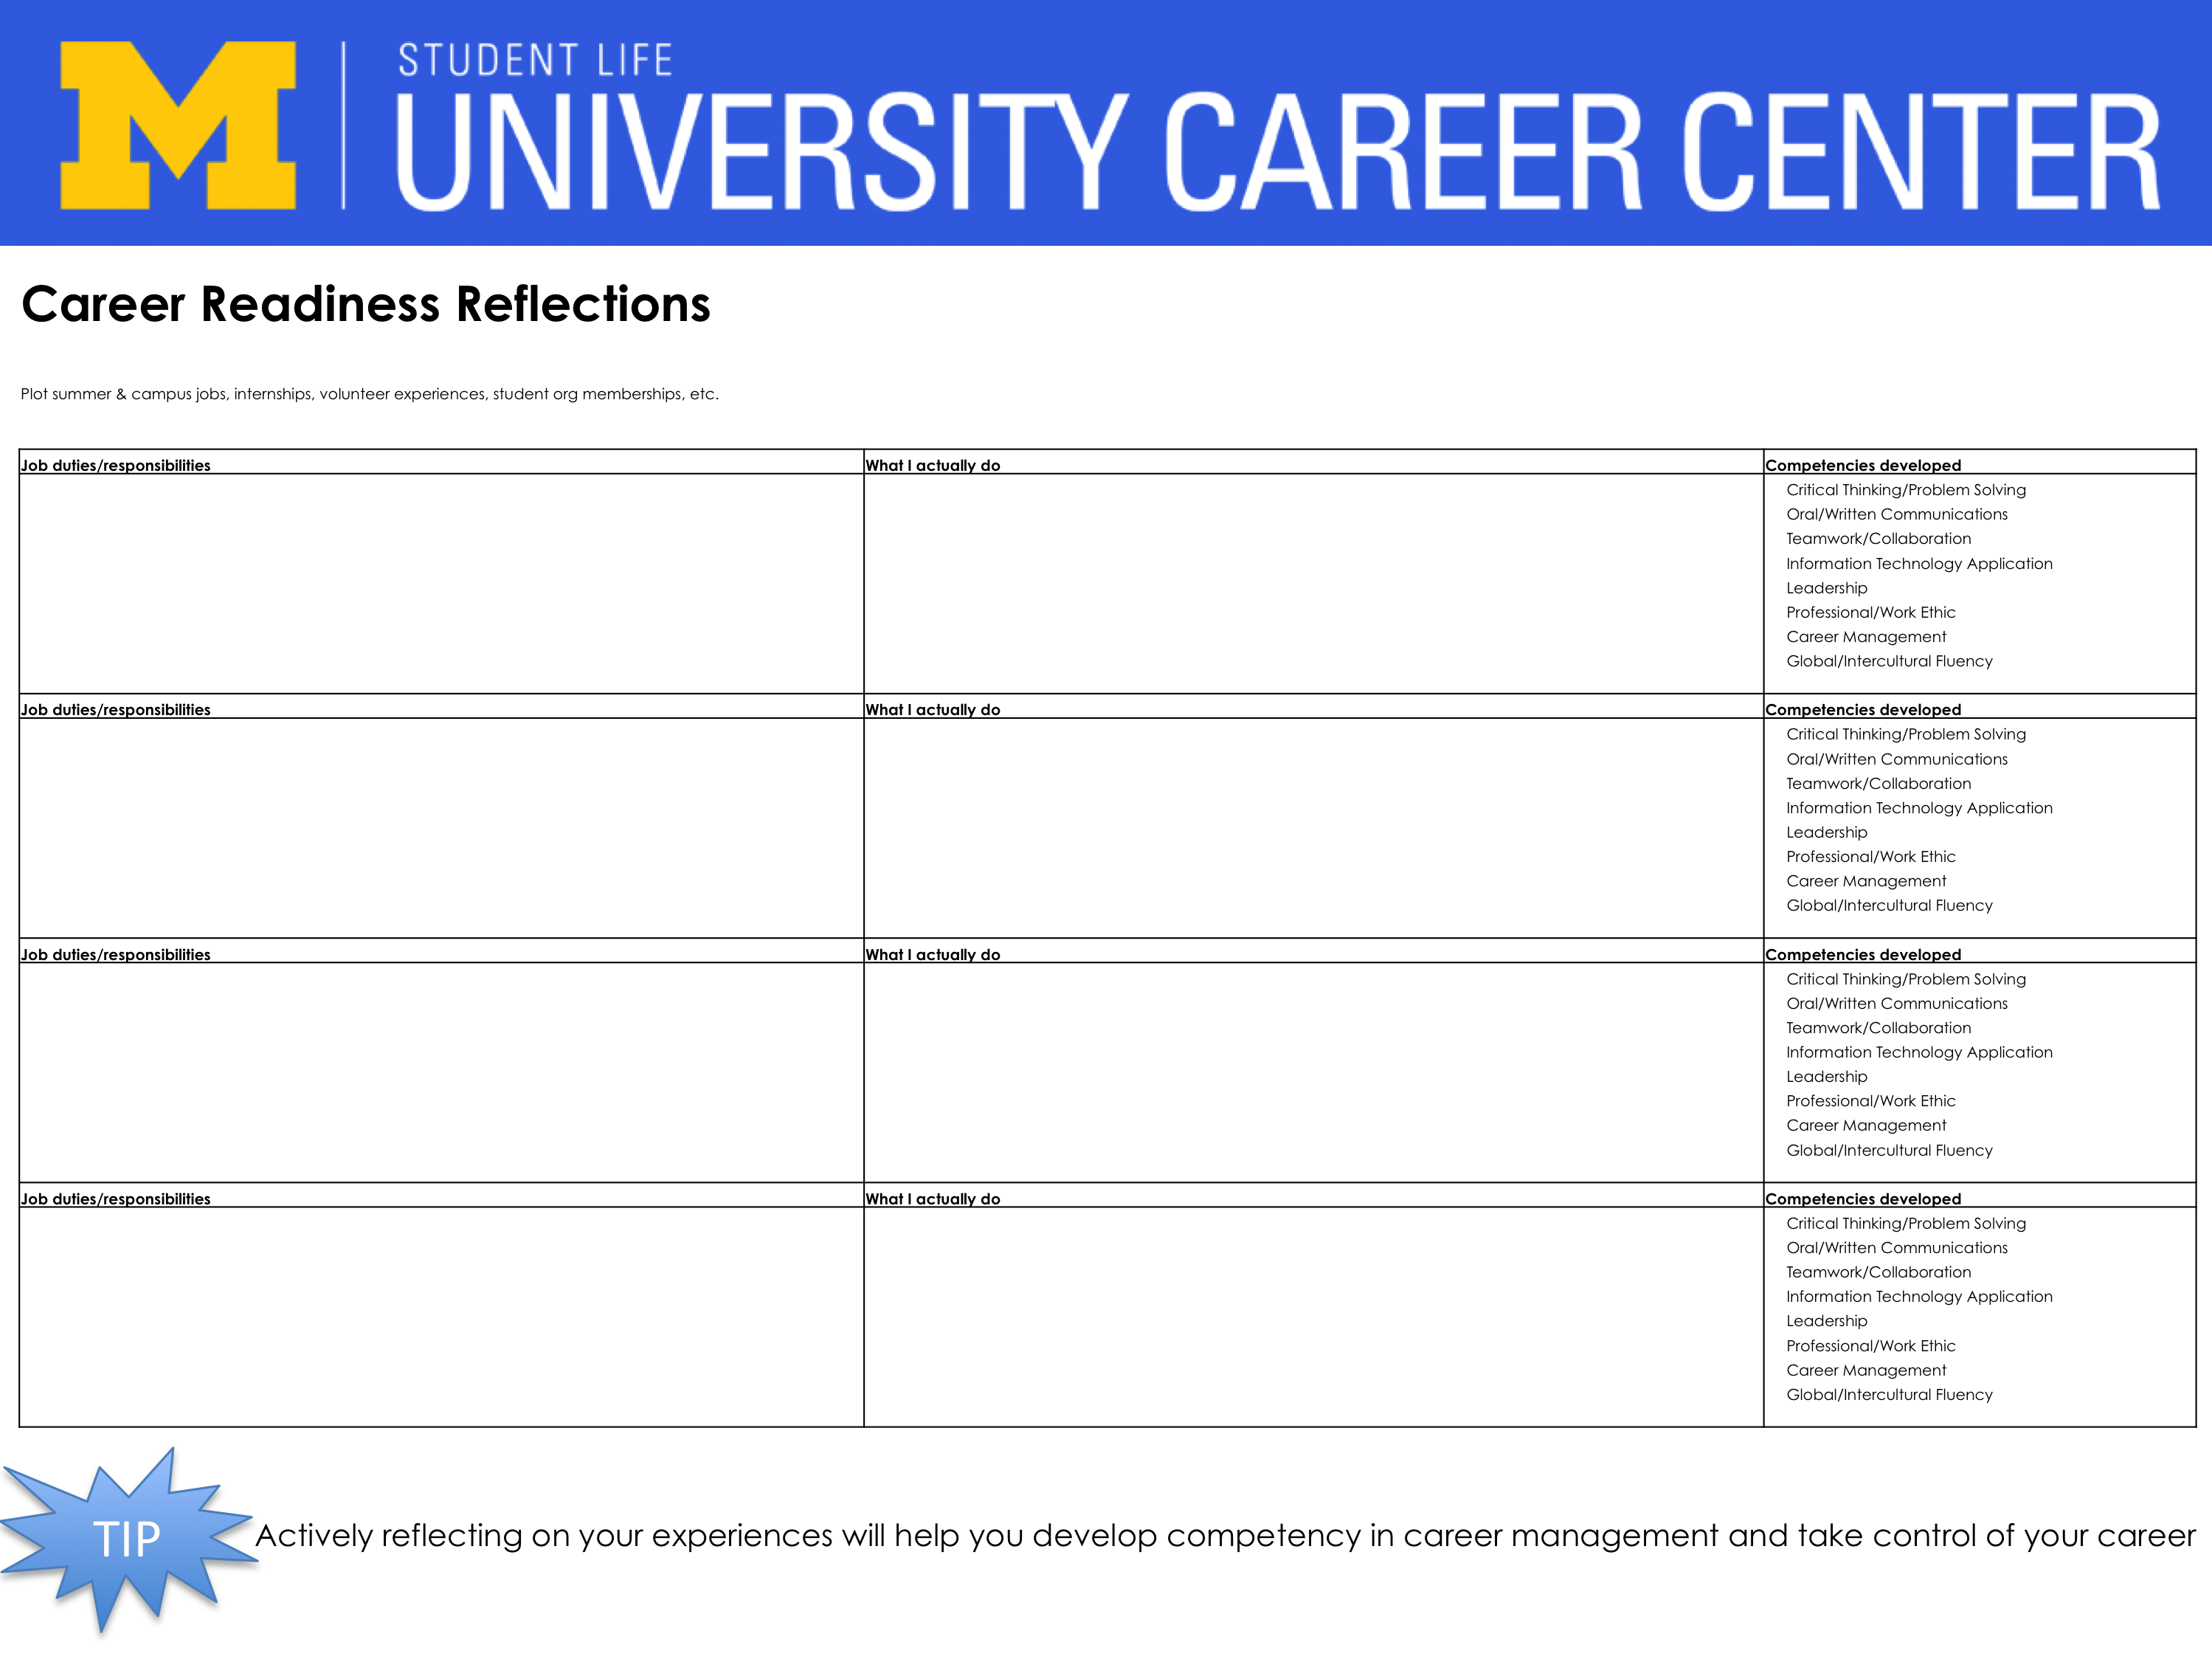 Career Readiness University Career Center